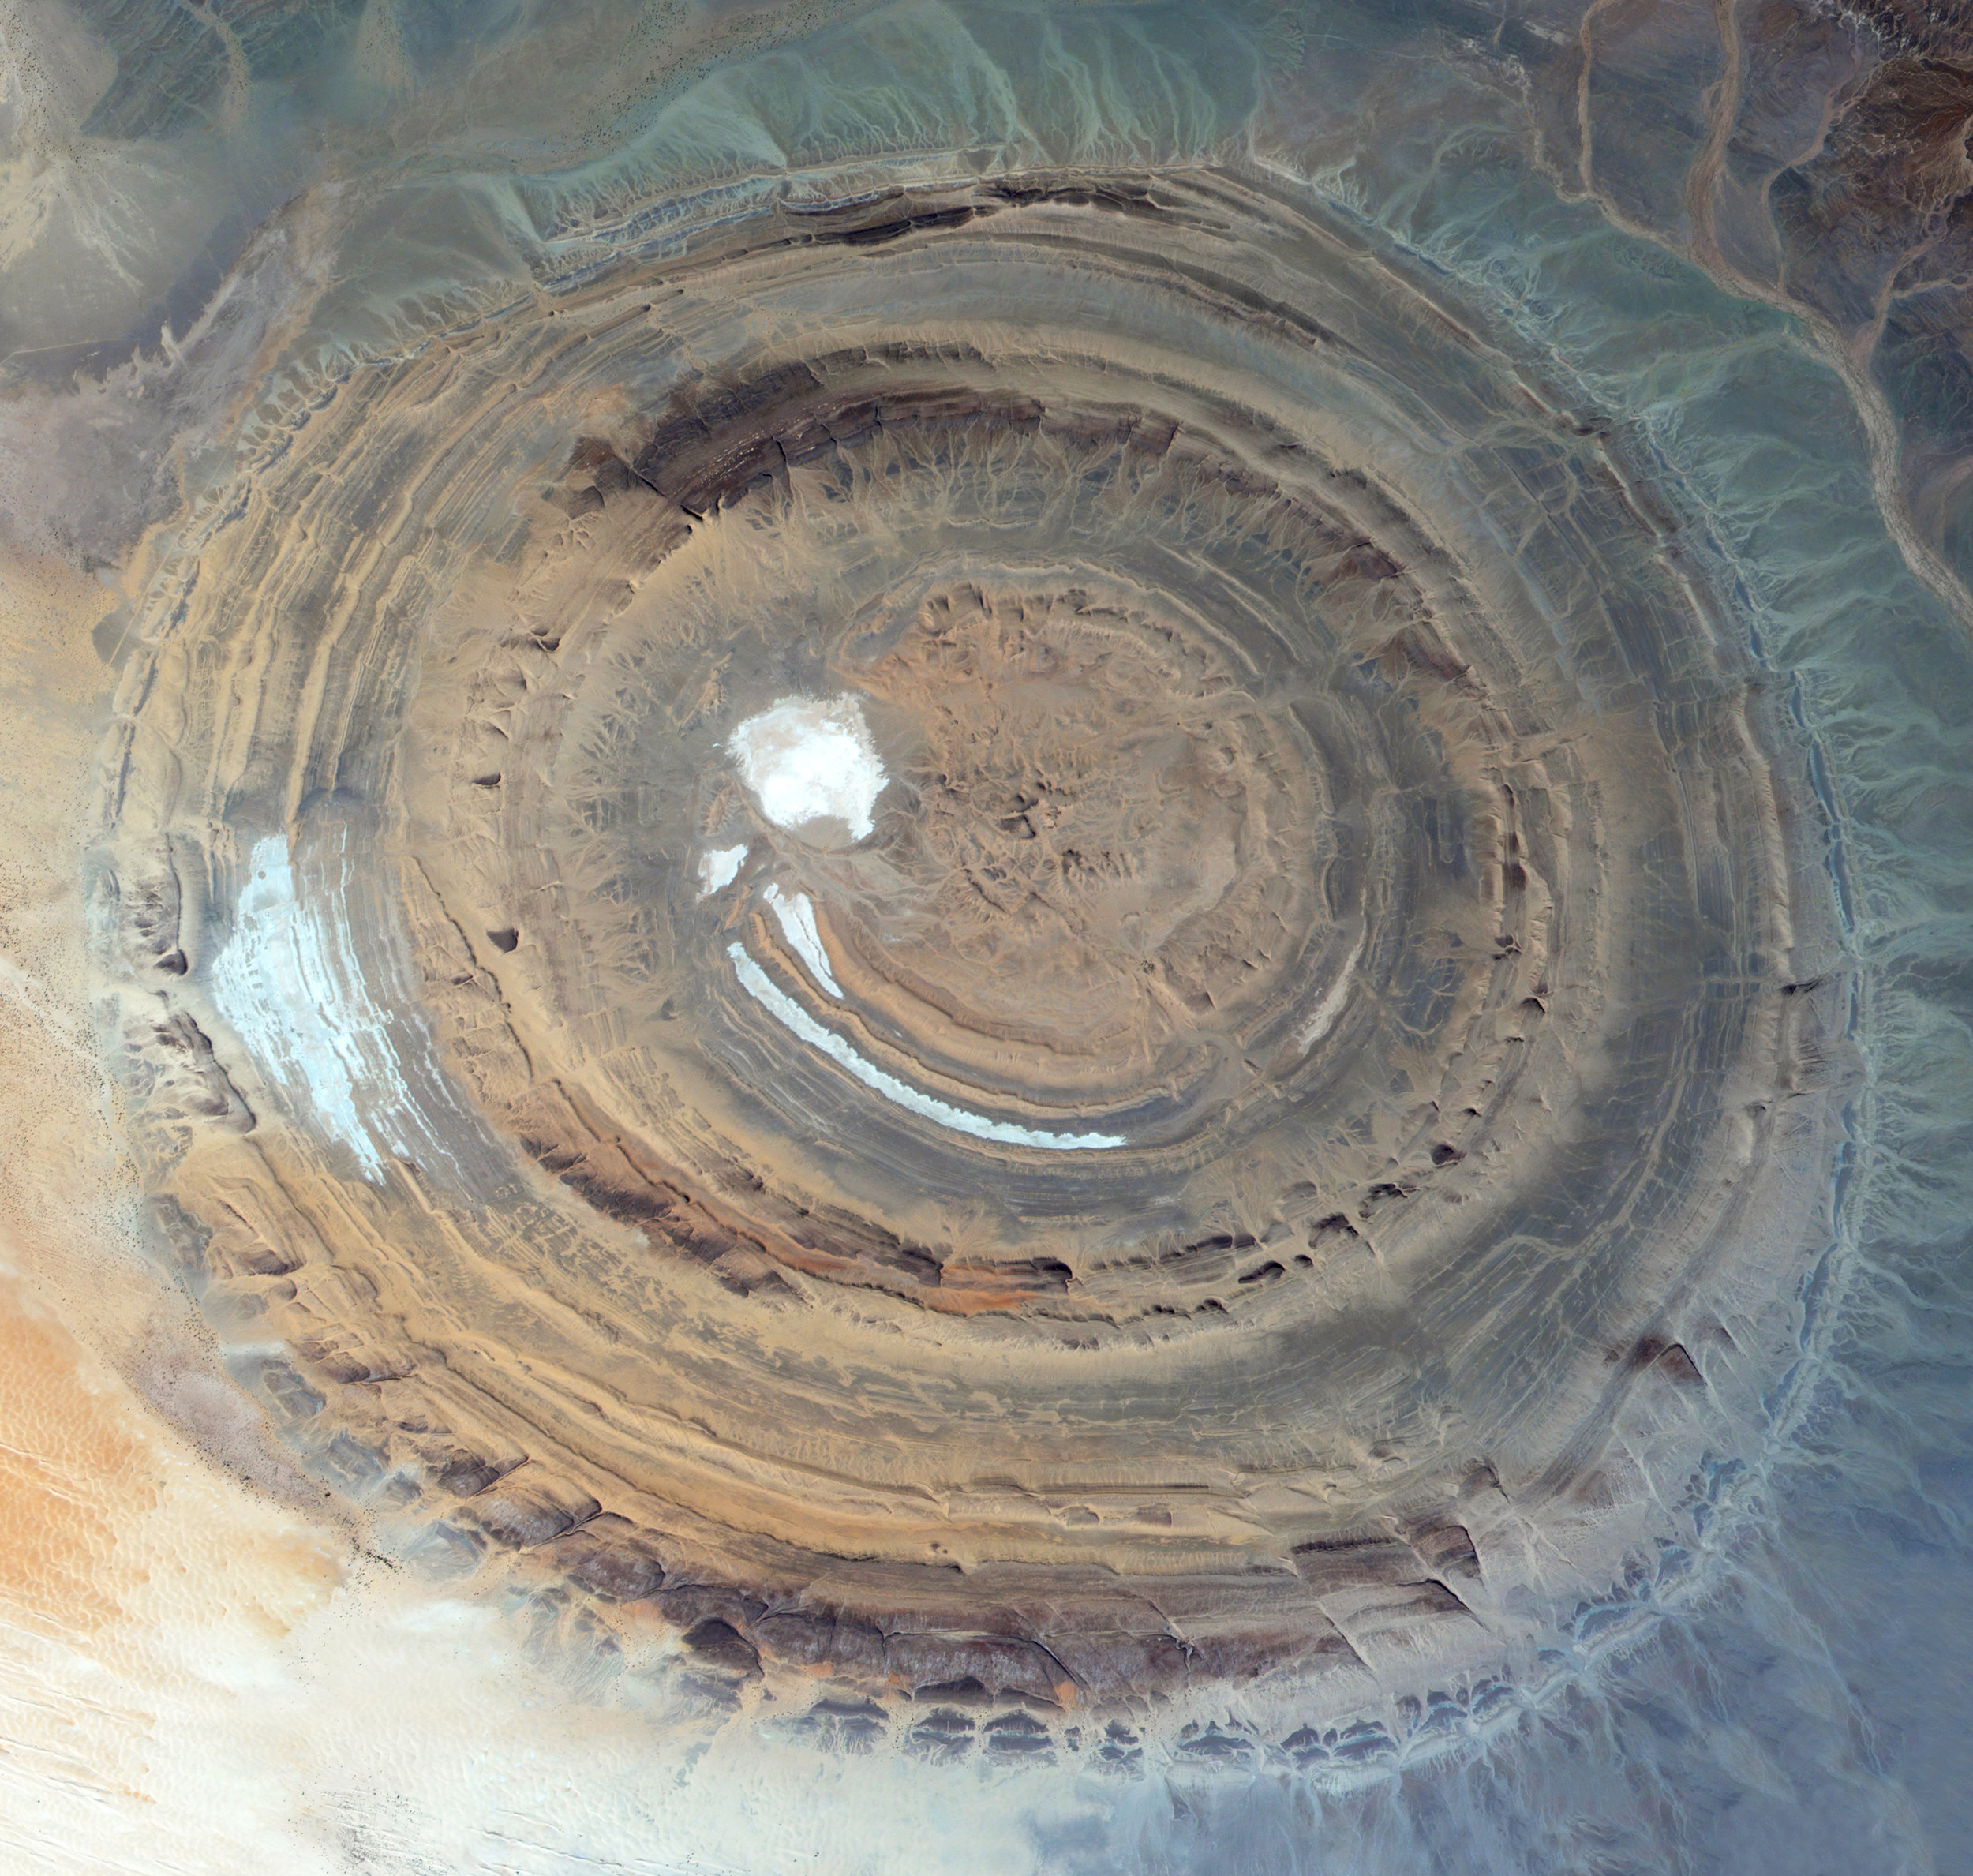 """The Richat Structure, also known as the """"Eye of the Sahara,"""" is a prominent circular feature in the Sahara Desert of west-central Mauritania. Measuring 30 miles (50 km) in diameter, the structure was originally thought to have been formed by the impact of an asteroid; however, it is now known to be an eroded structural dome of layered sedimentary rocks.  21°07'26.4""""N, 11°24'07.2""""W  Source imagery: Axelspace"""